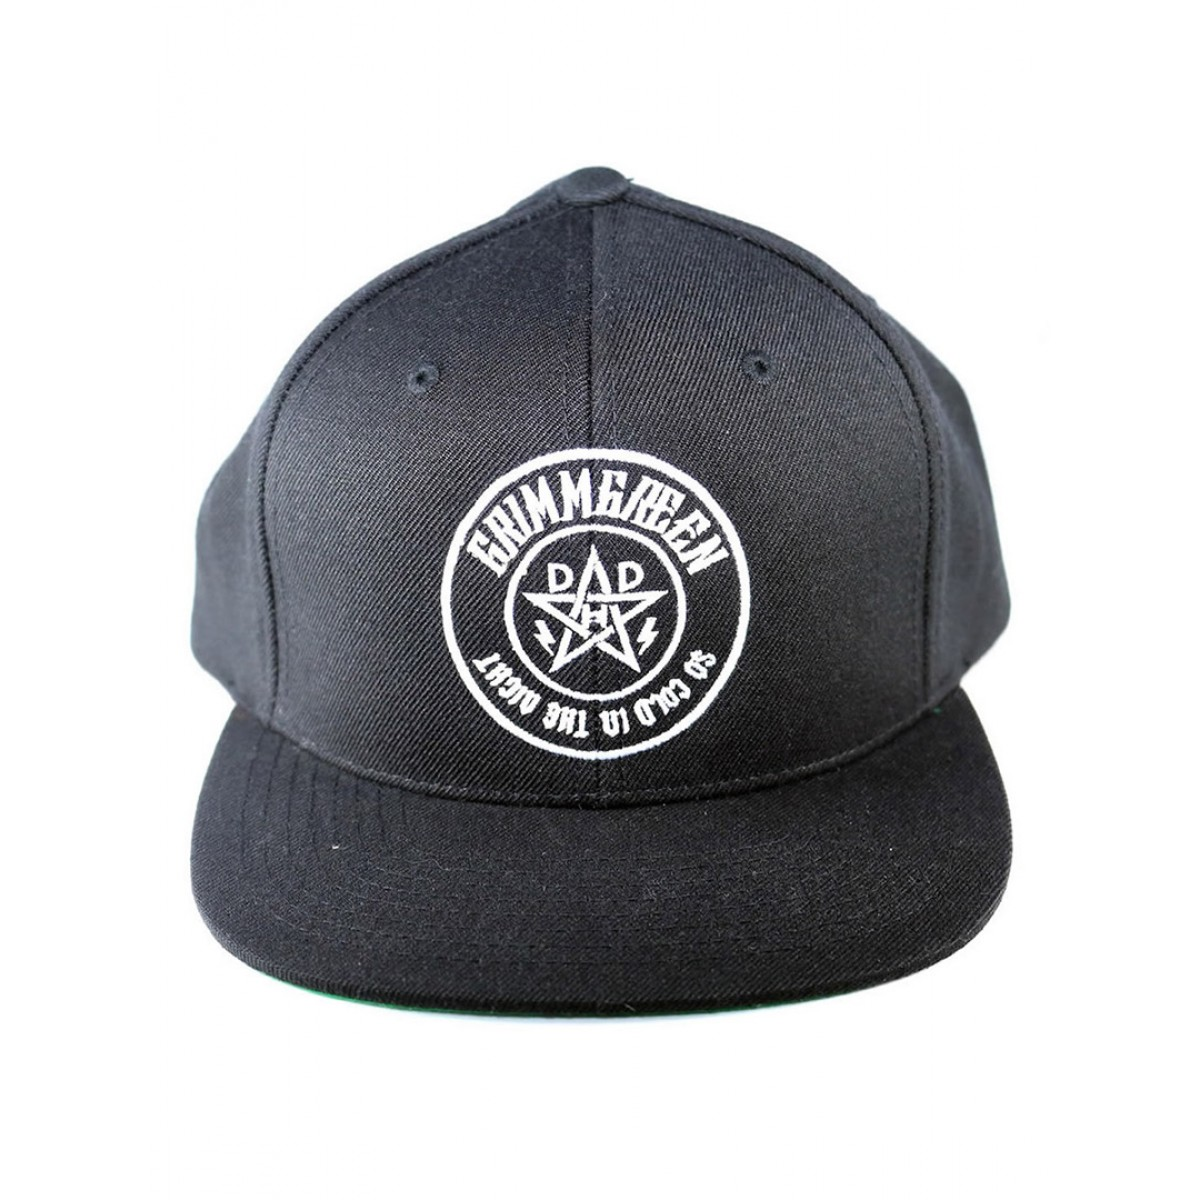 SNAPBACK BY GRIMM GREEN & DOUBLE HELIX DESIGNS